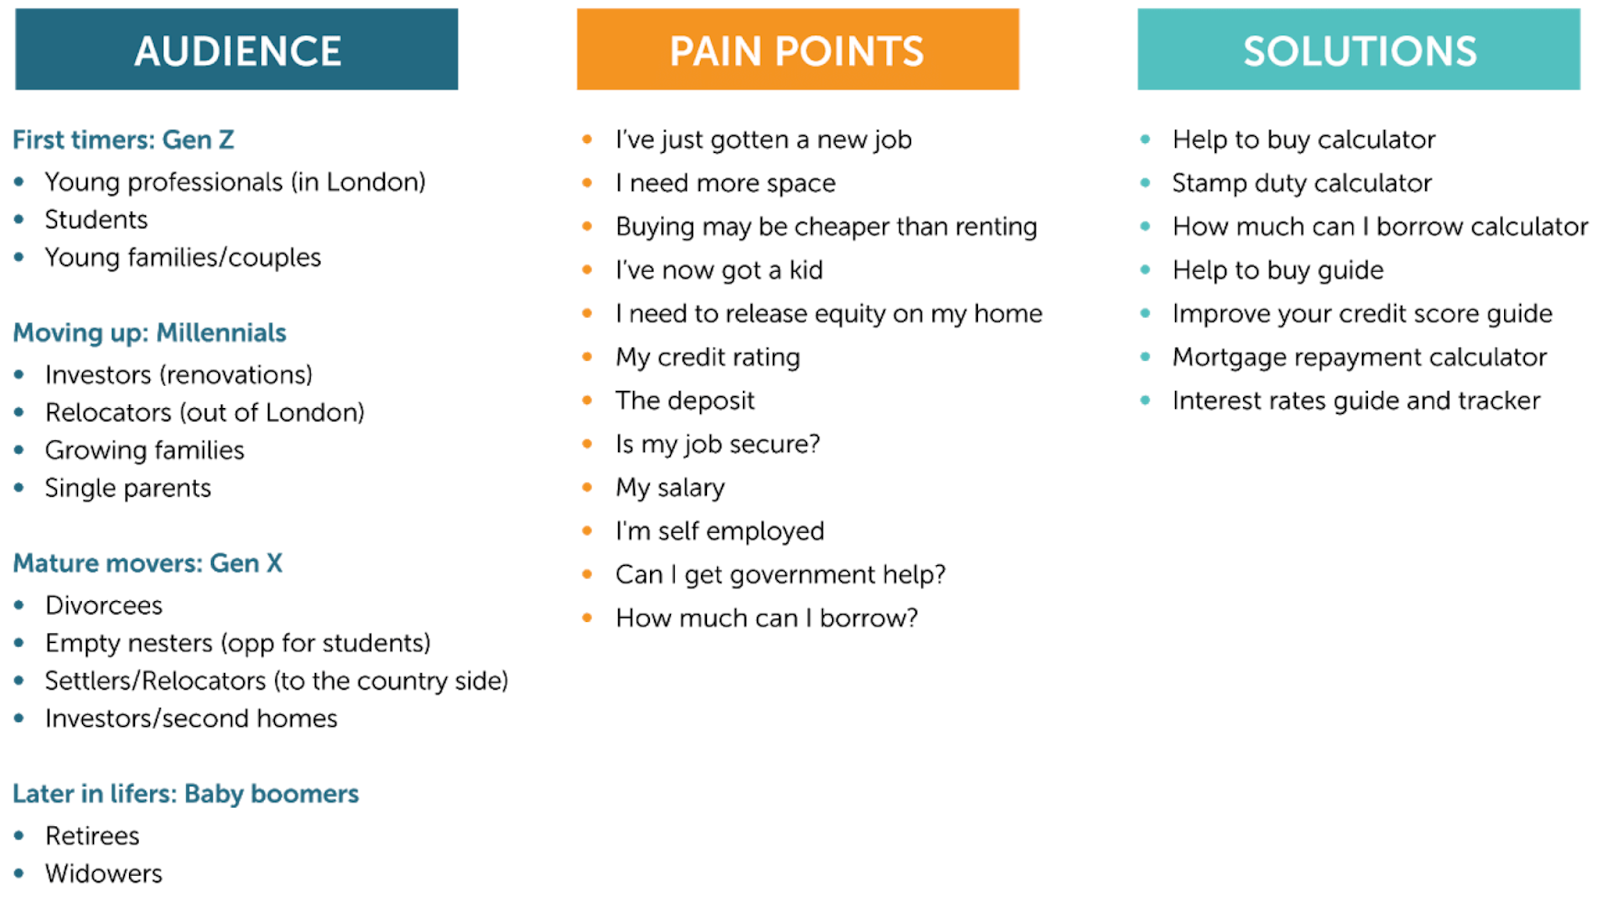 Example framework broken out into audience, pain points, and solutions.